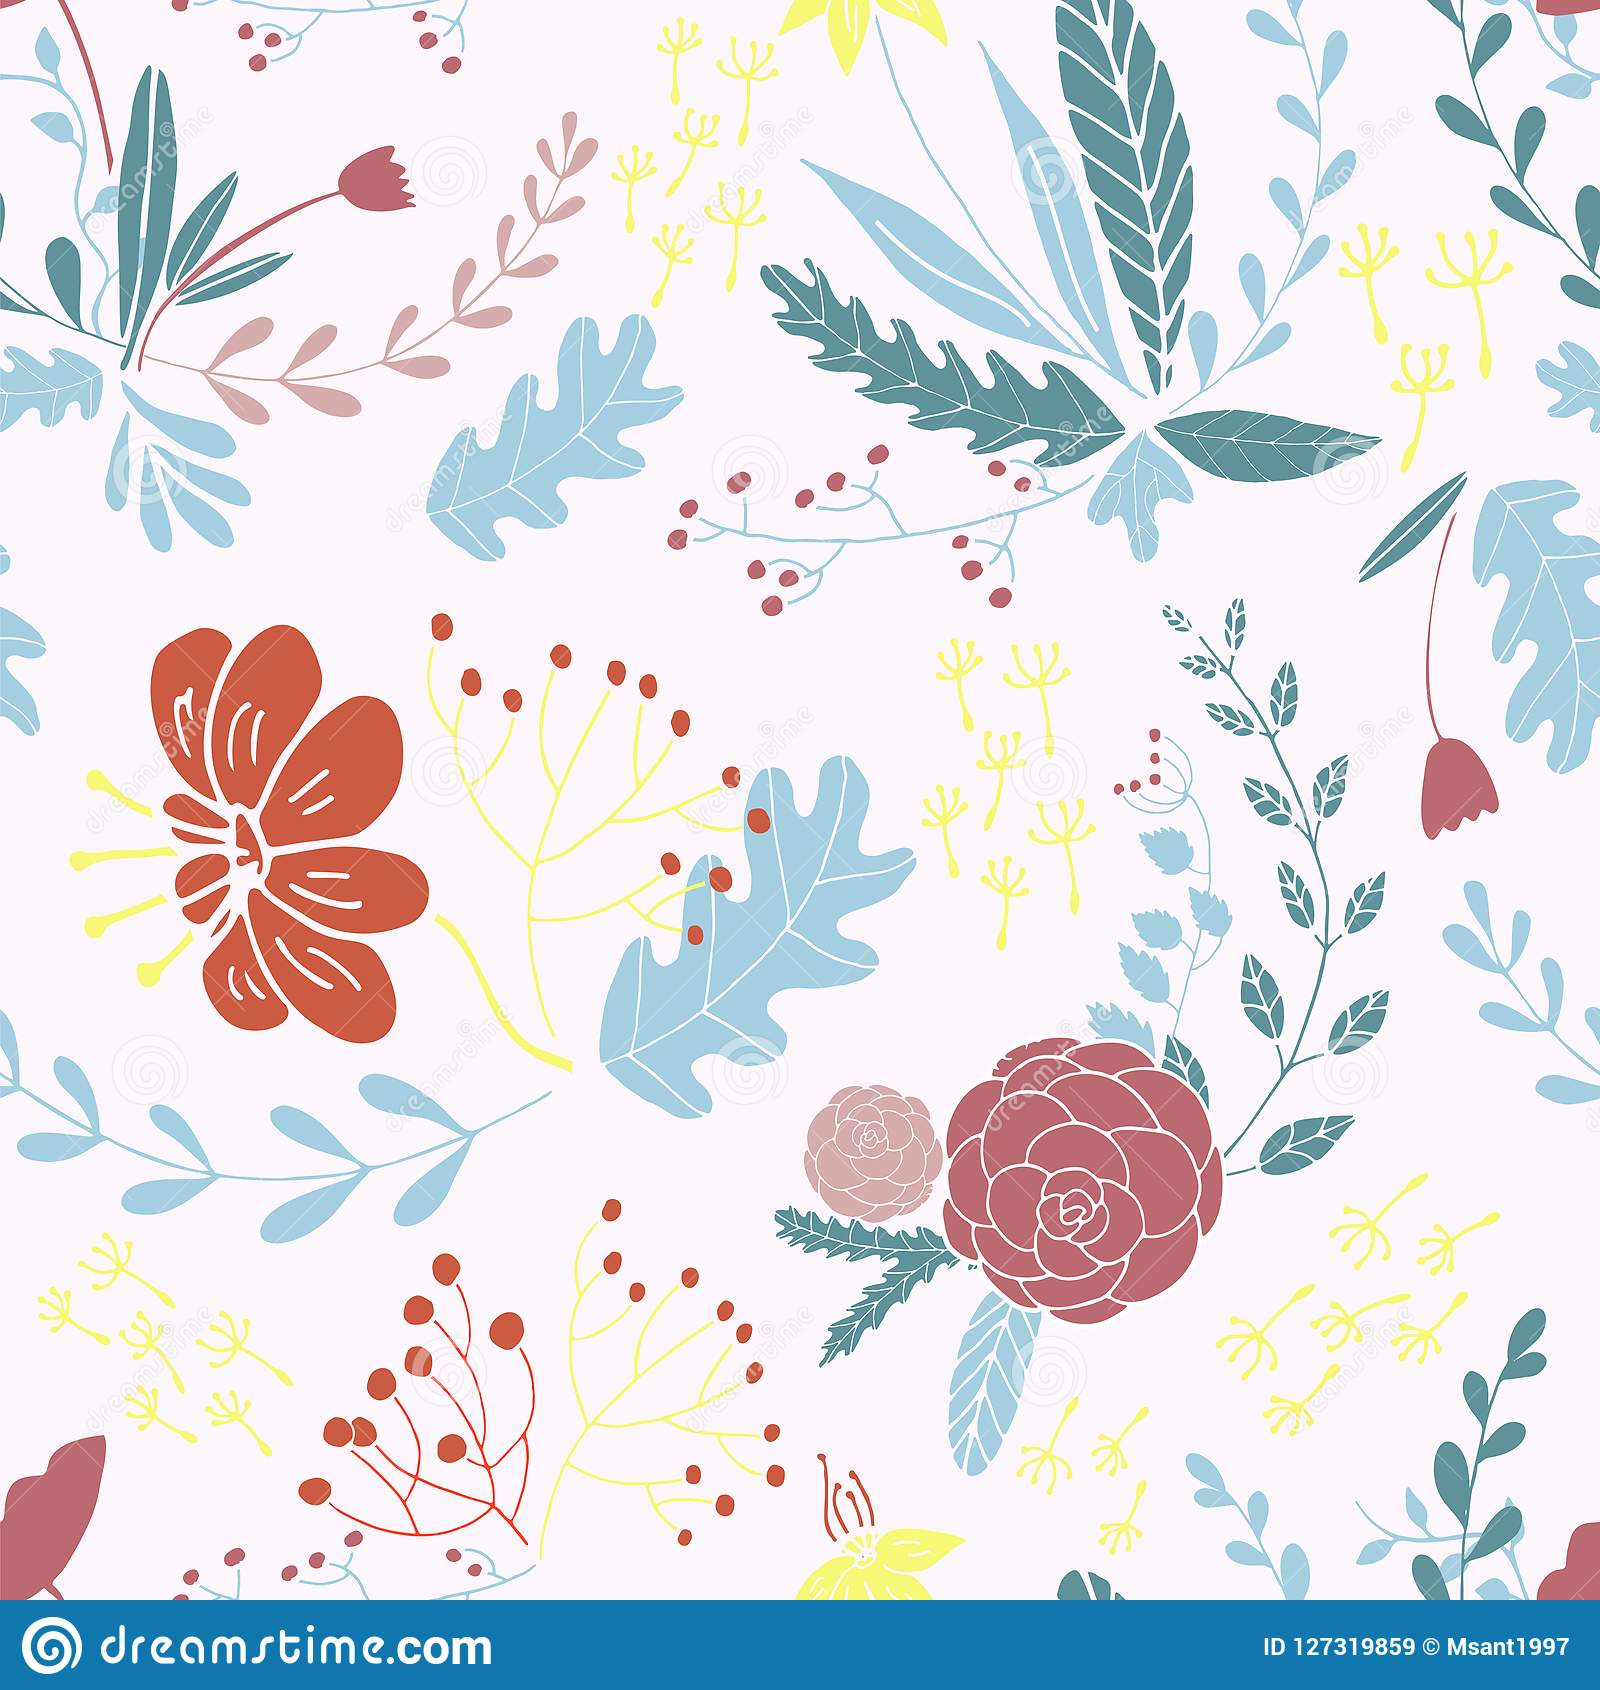 Floral seamless pattern in hand drawn design.